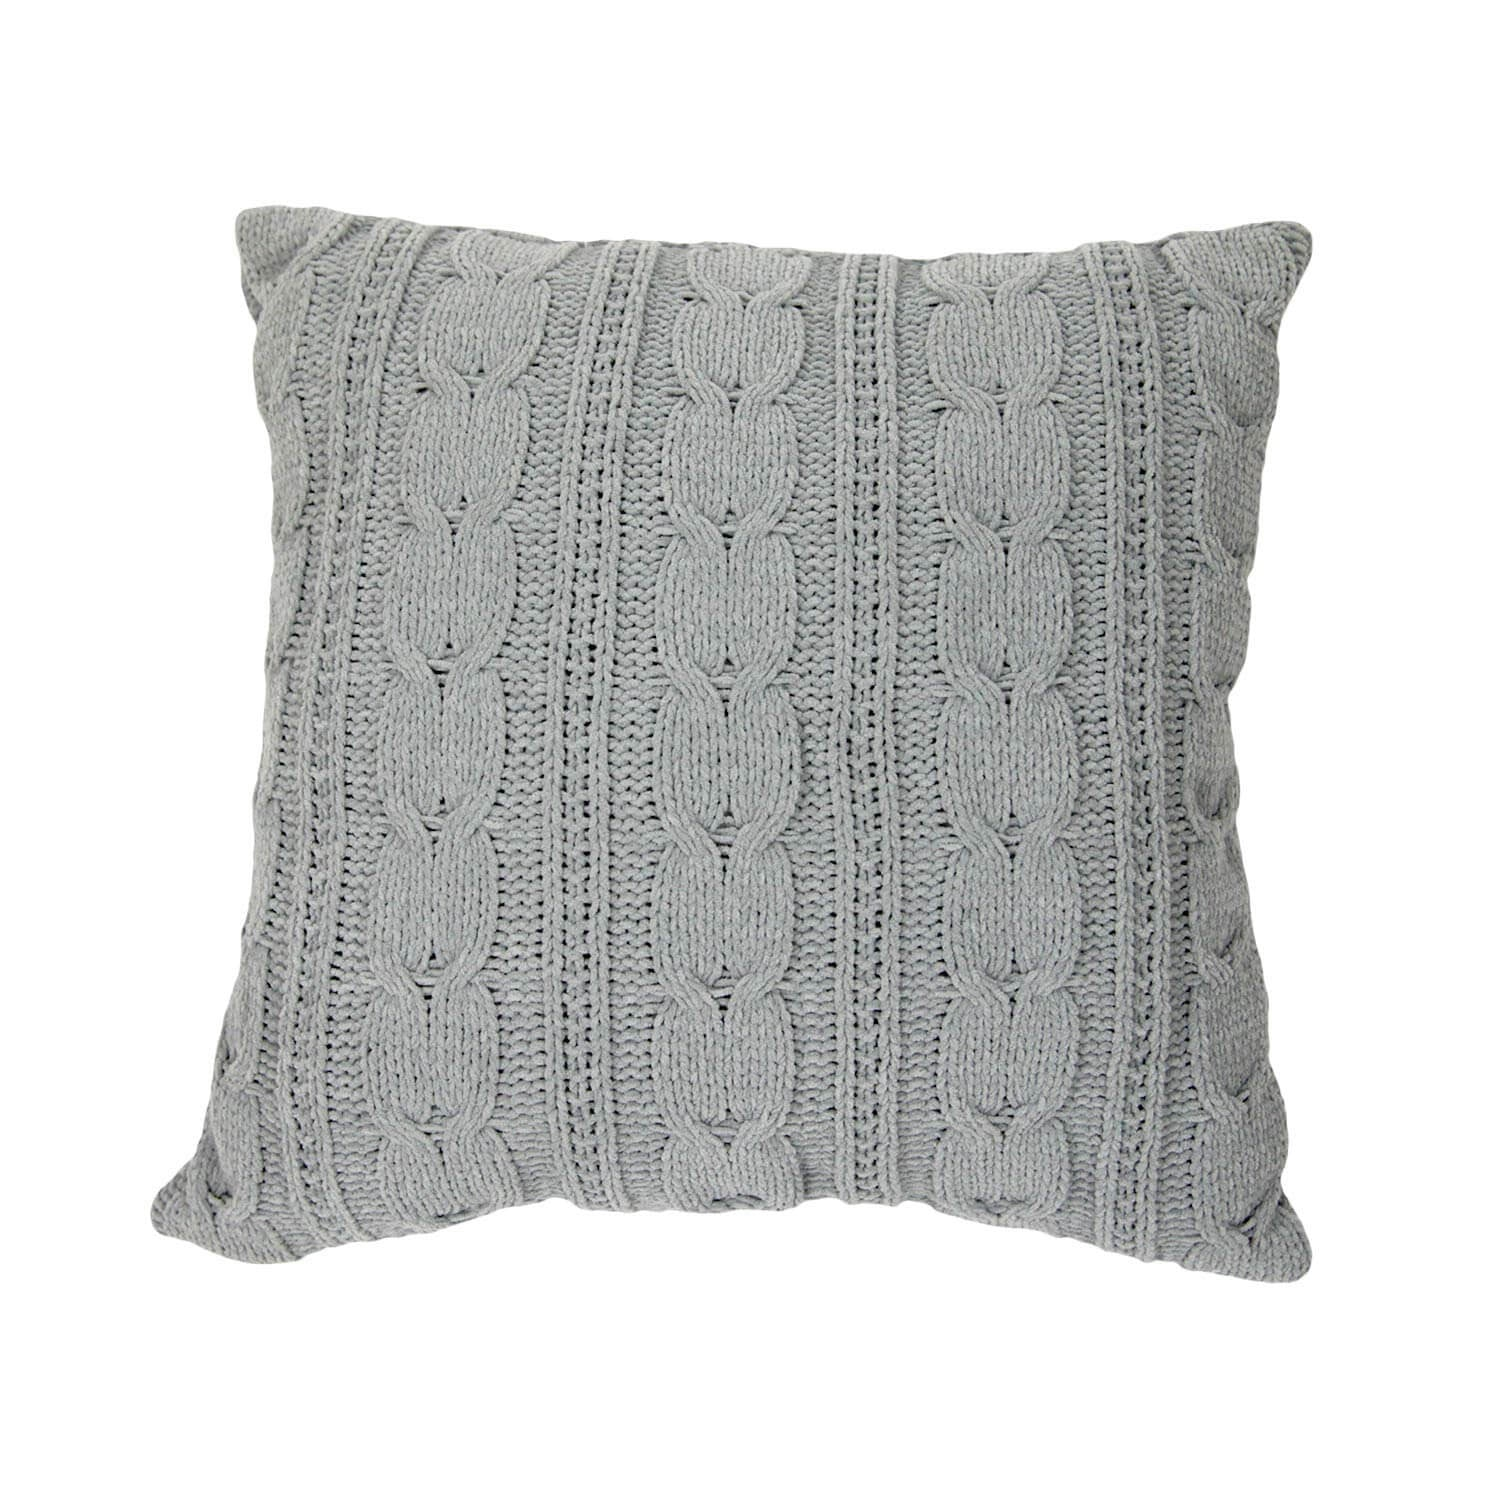 soft decorative pillows. Soft Cable Knit Pillow  Dorm Throw Pillows Dormify